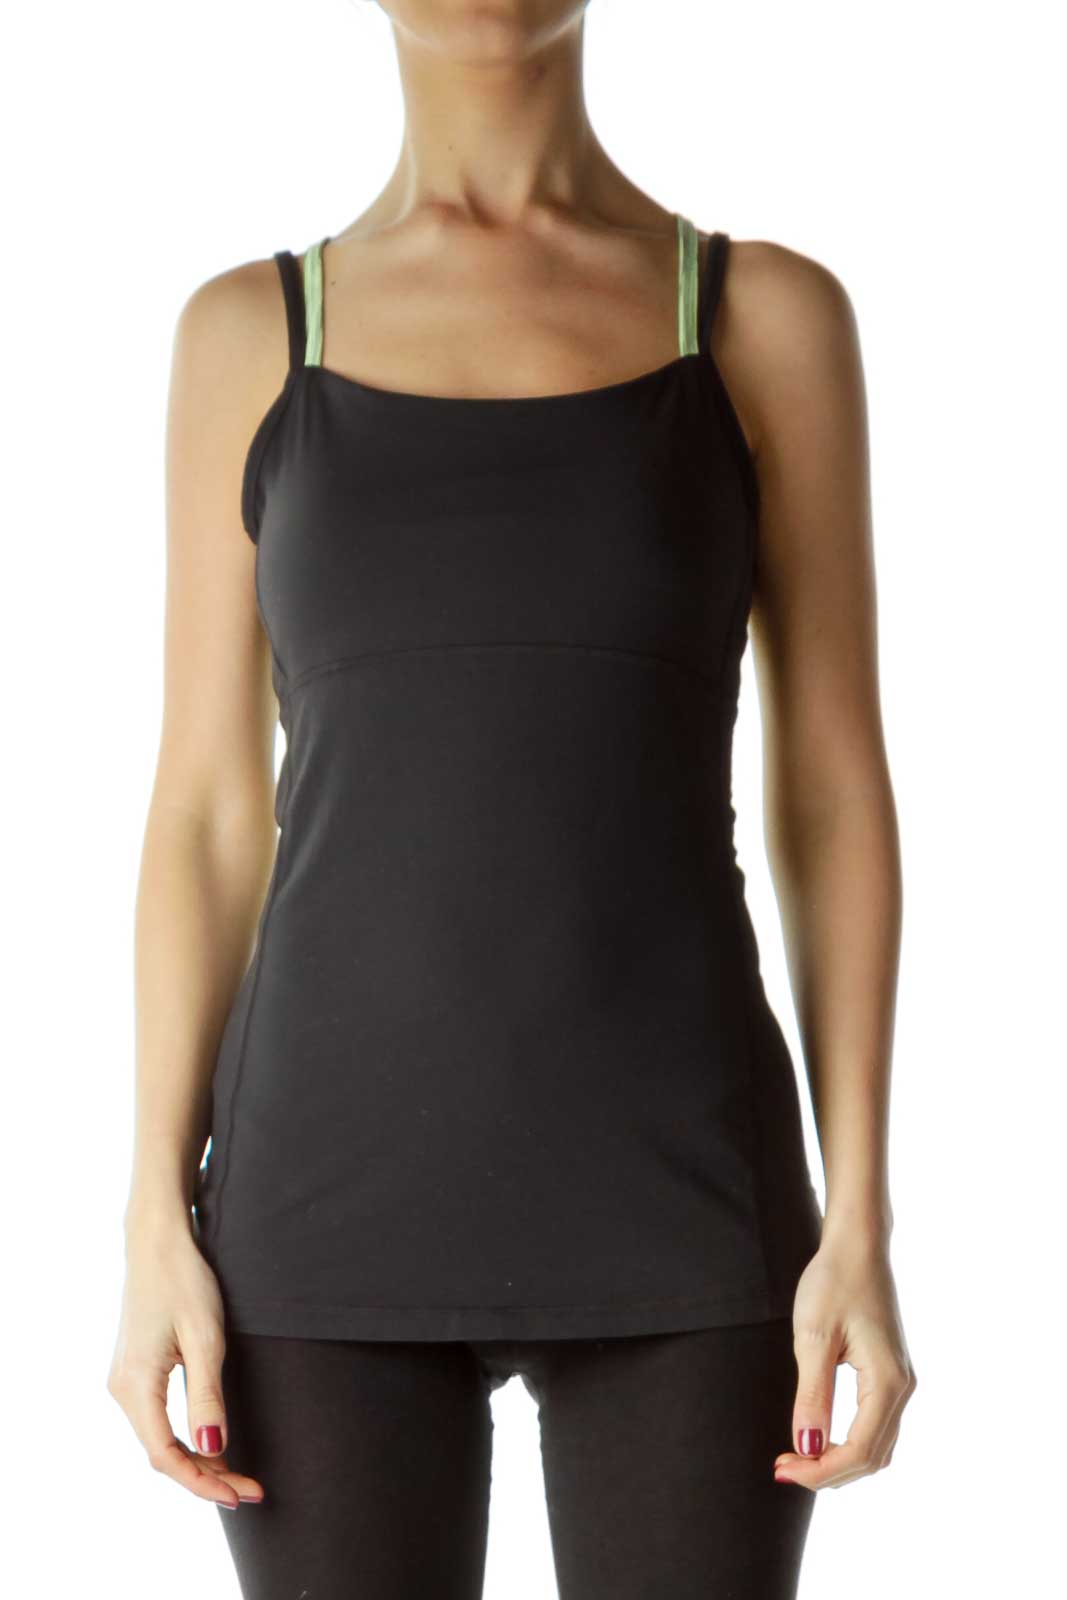 Black Green Yoga Tank